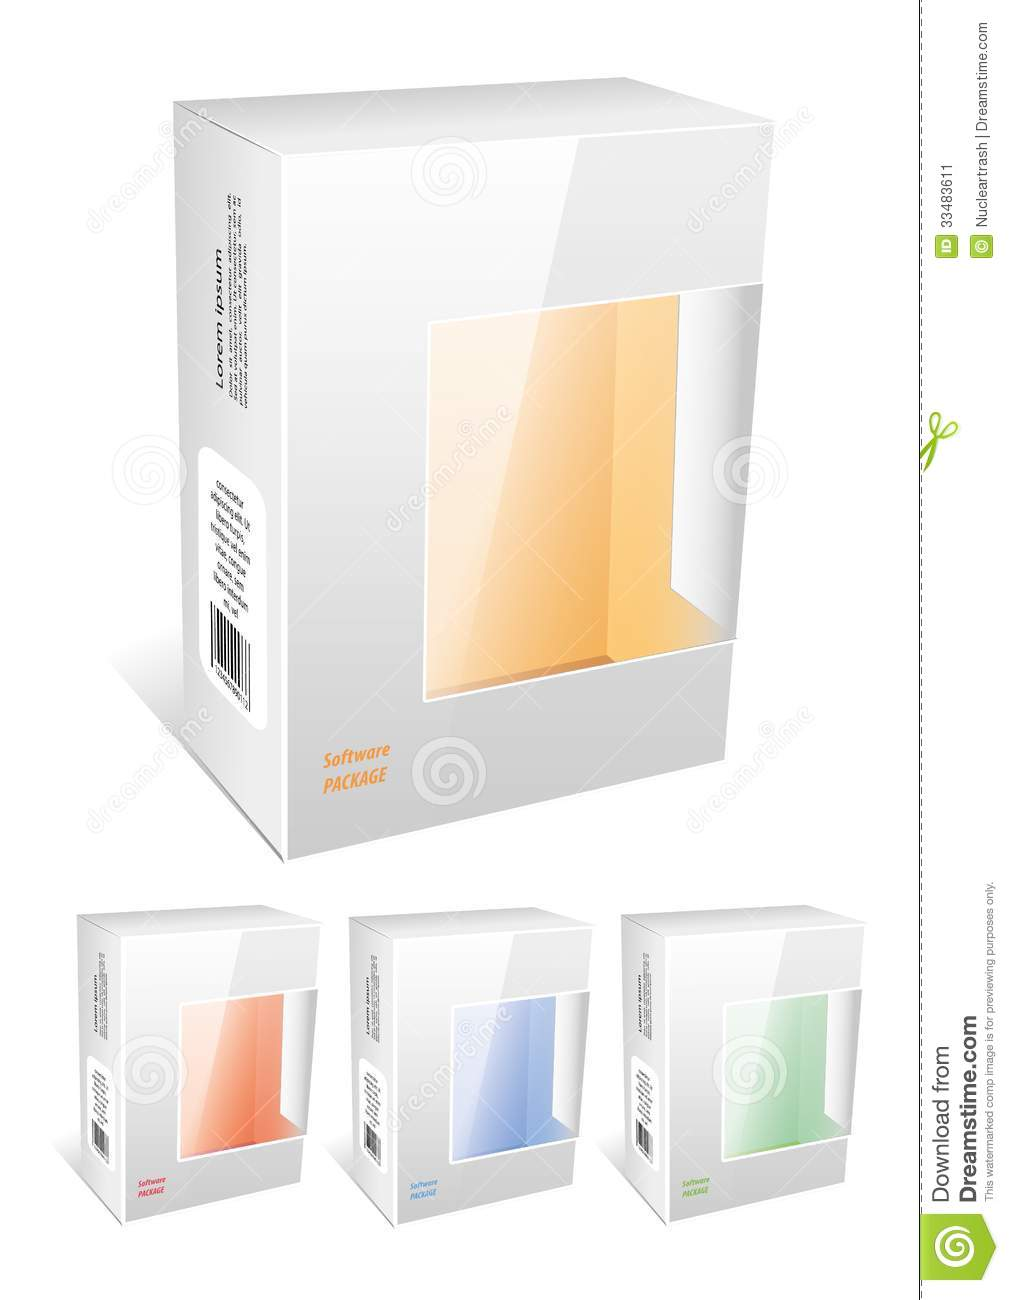 Mockup Box Open Free Package Box Stock Vector. Image Of Container, Packaging